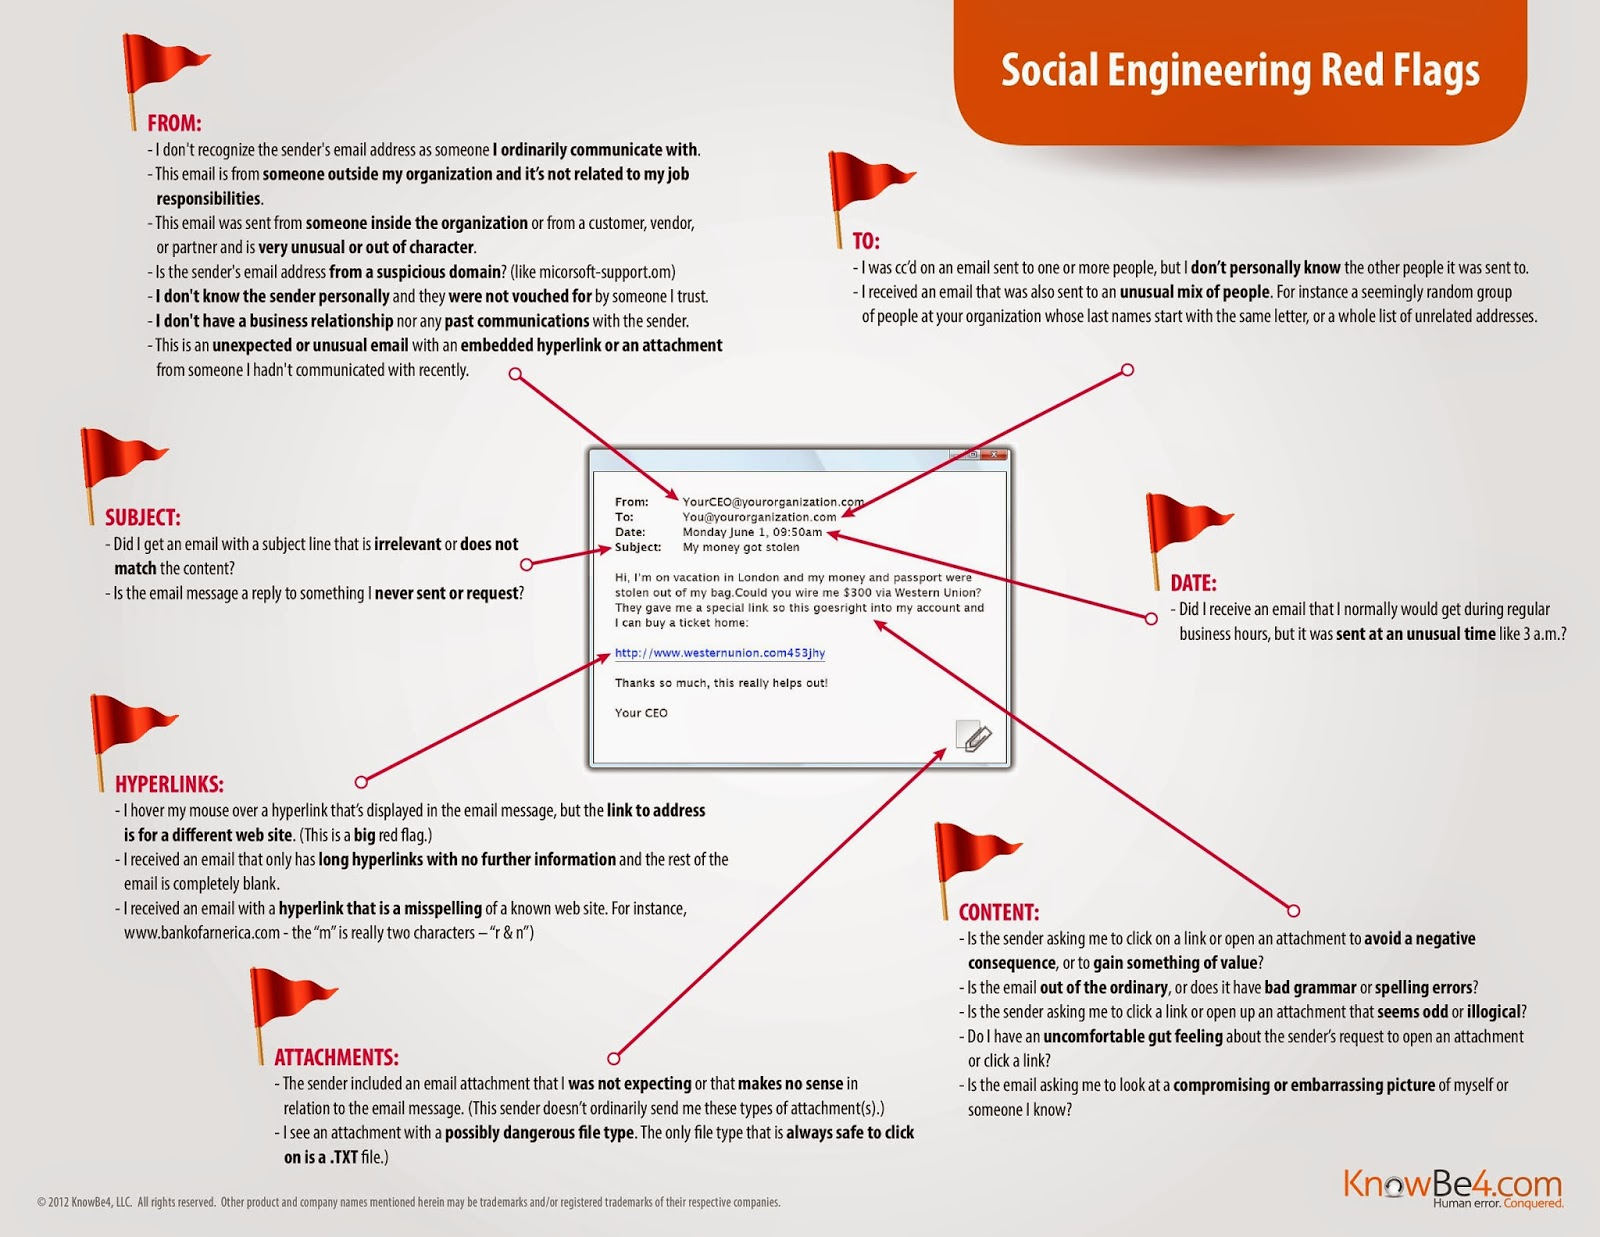 https://www.baroan.com/images/stories/documents/SocialEngineeringRedFlags.pdf